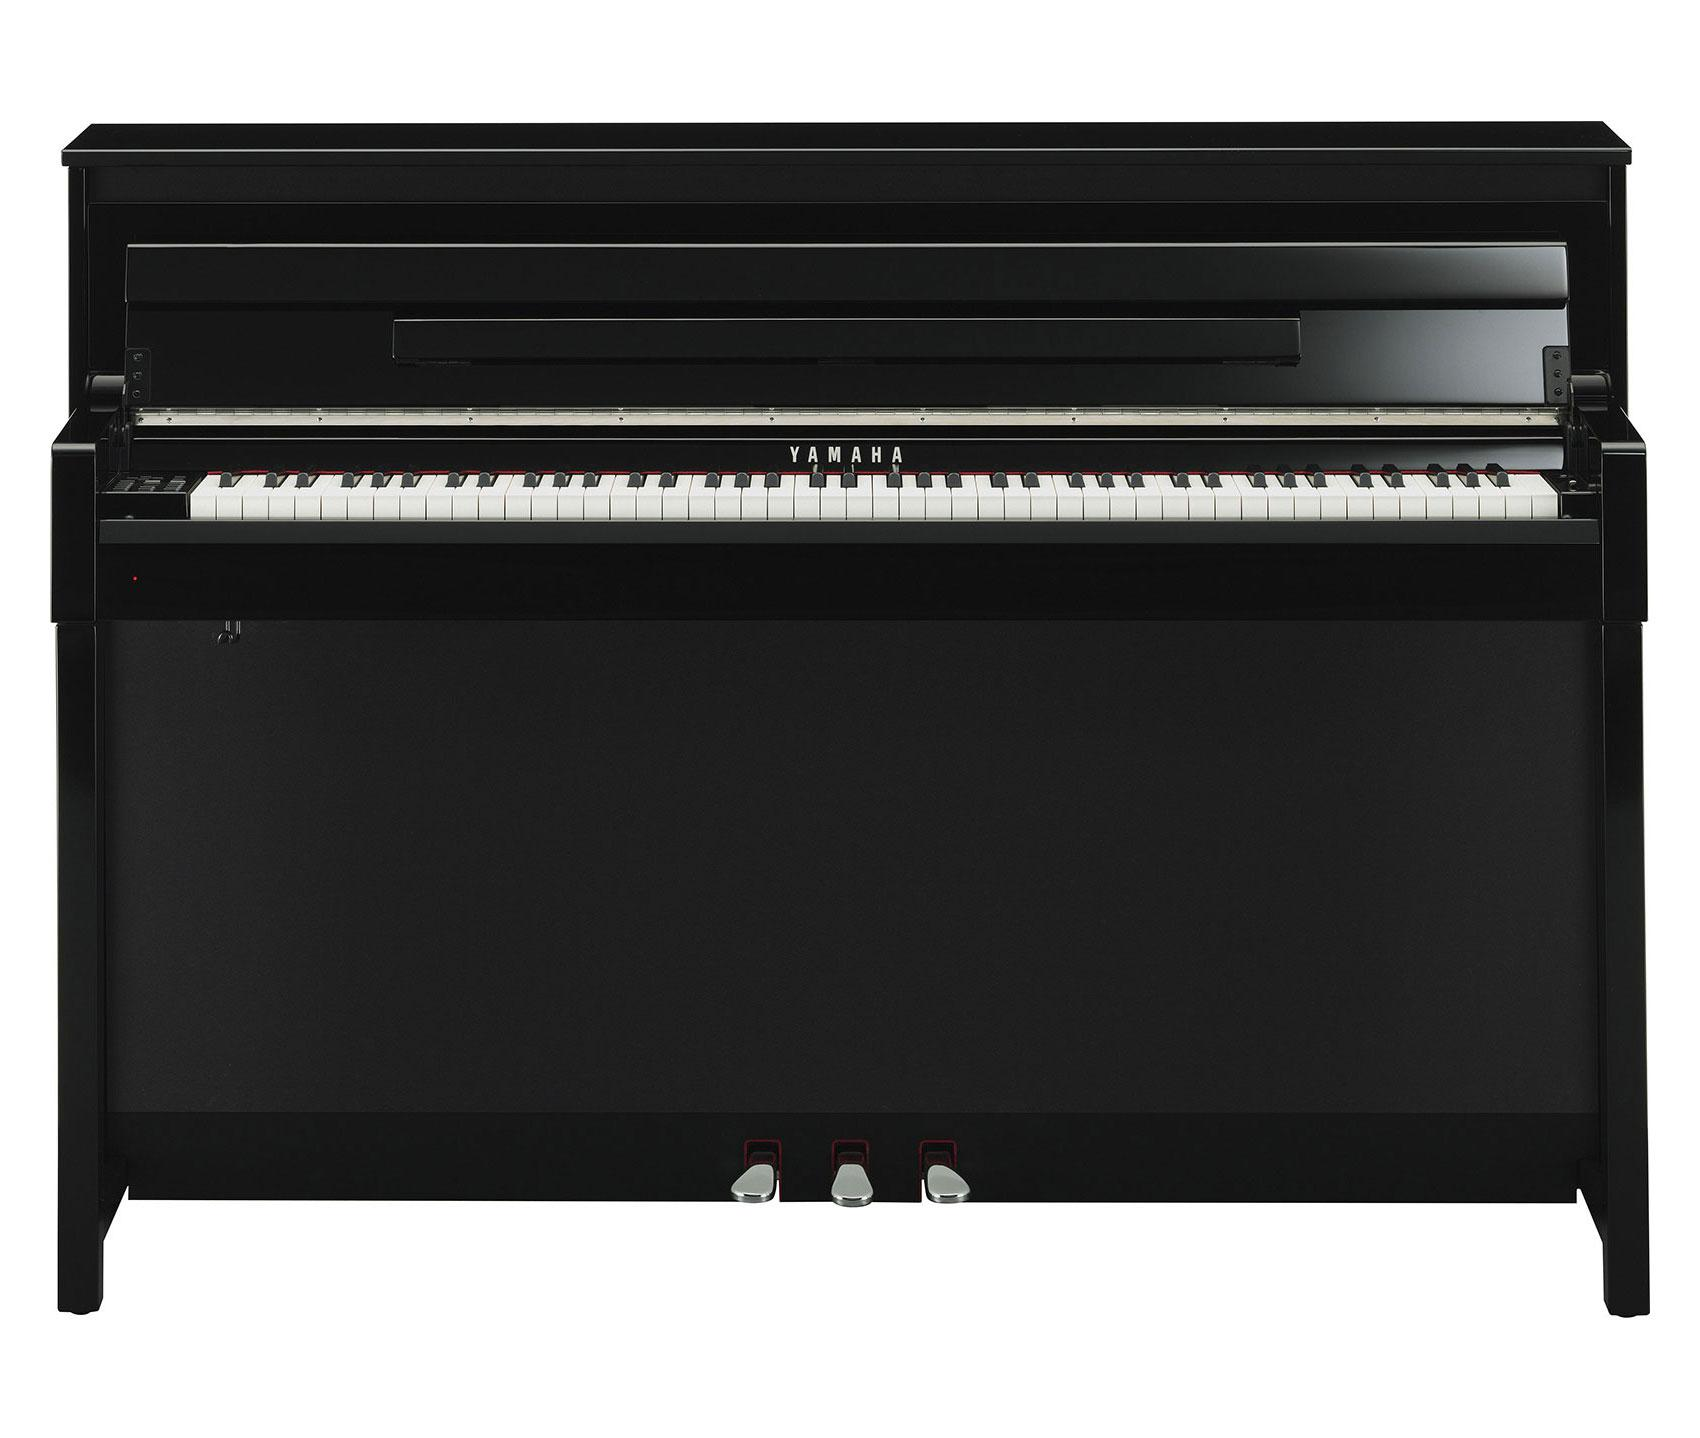 yamaha clp 585 pe digitalpiano schwarz hochglanz set. Black Bedroom Furniture Sets. Home Design Ideas